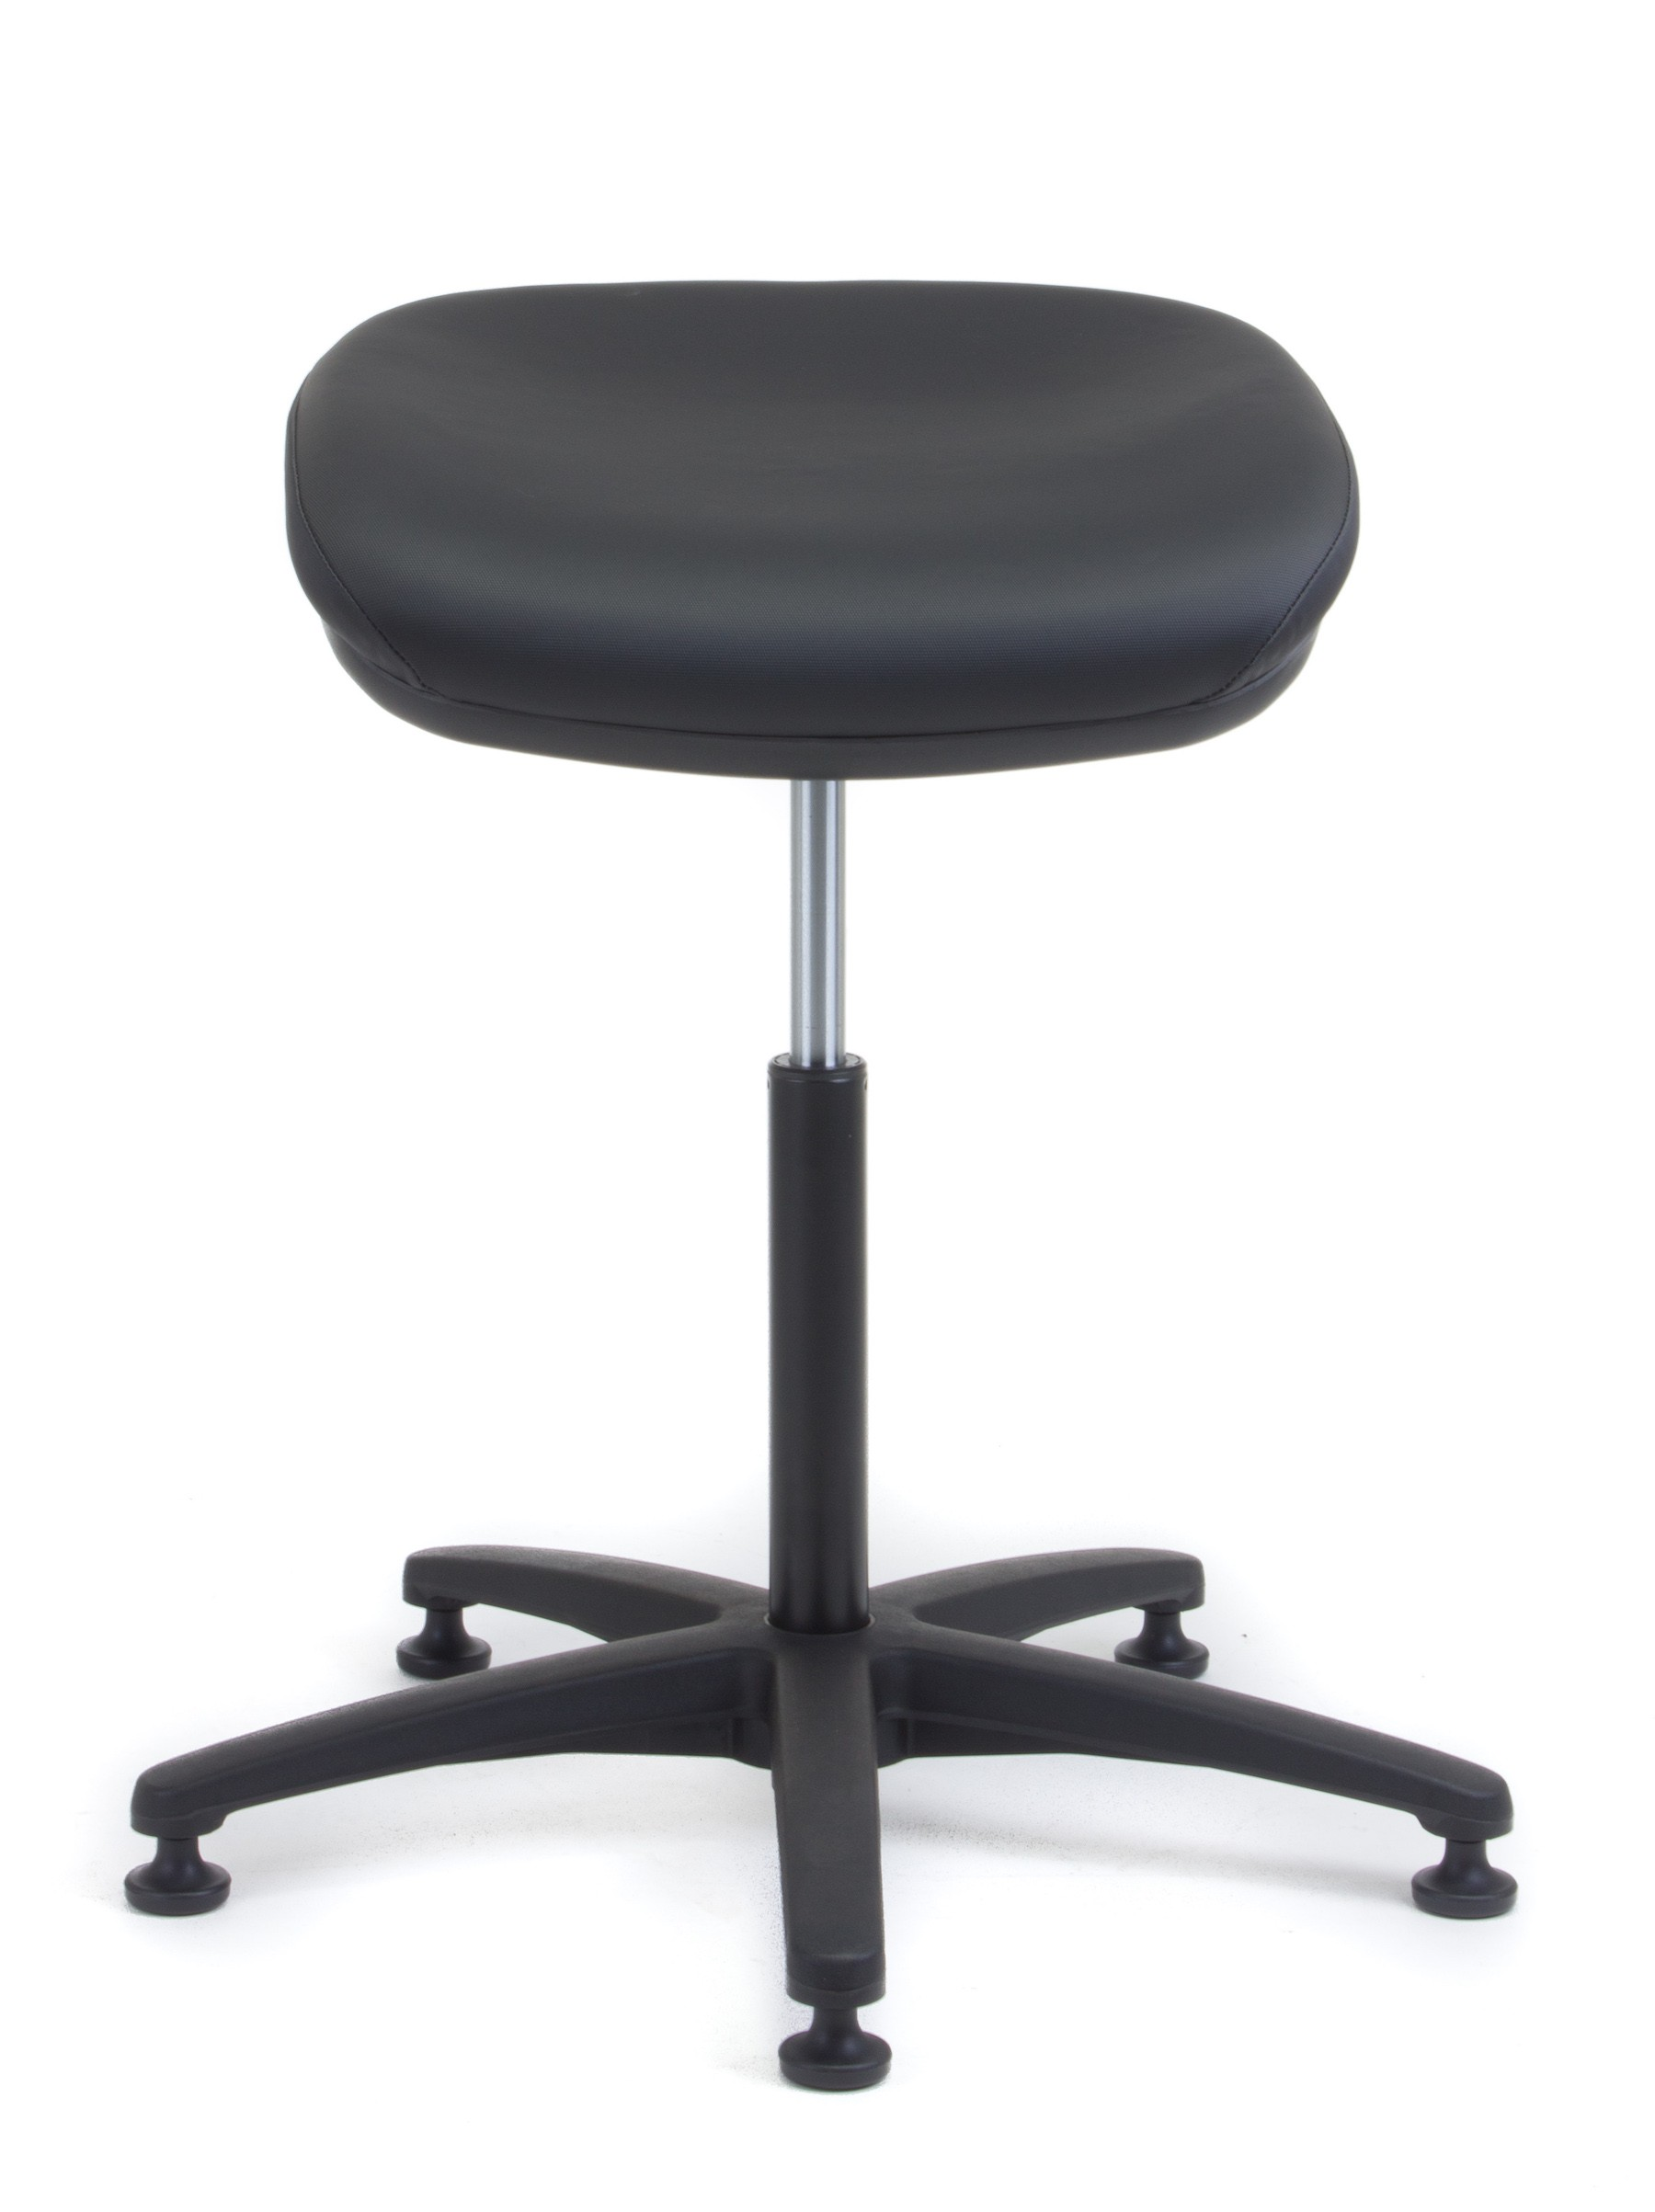 Sit stand seating utilities fice Furniture Desk Chairs Task